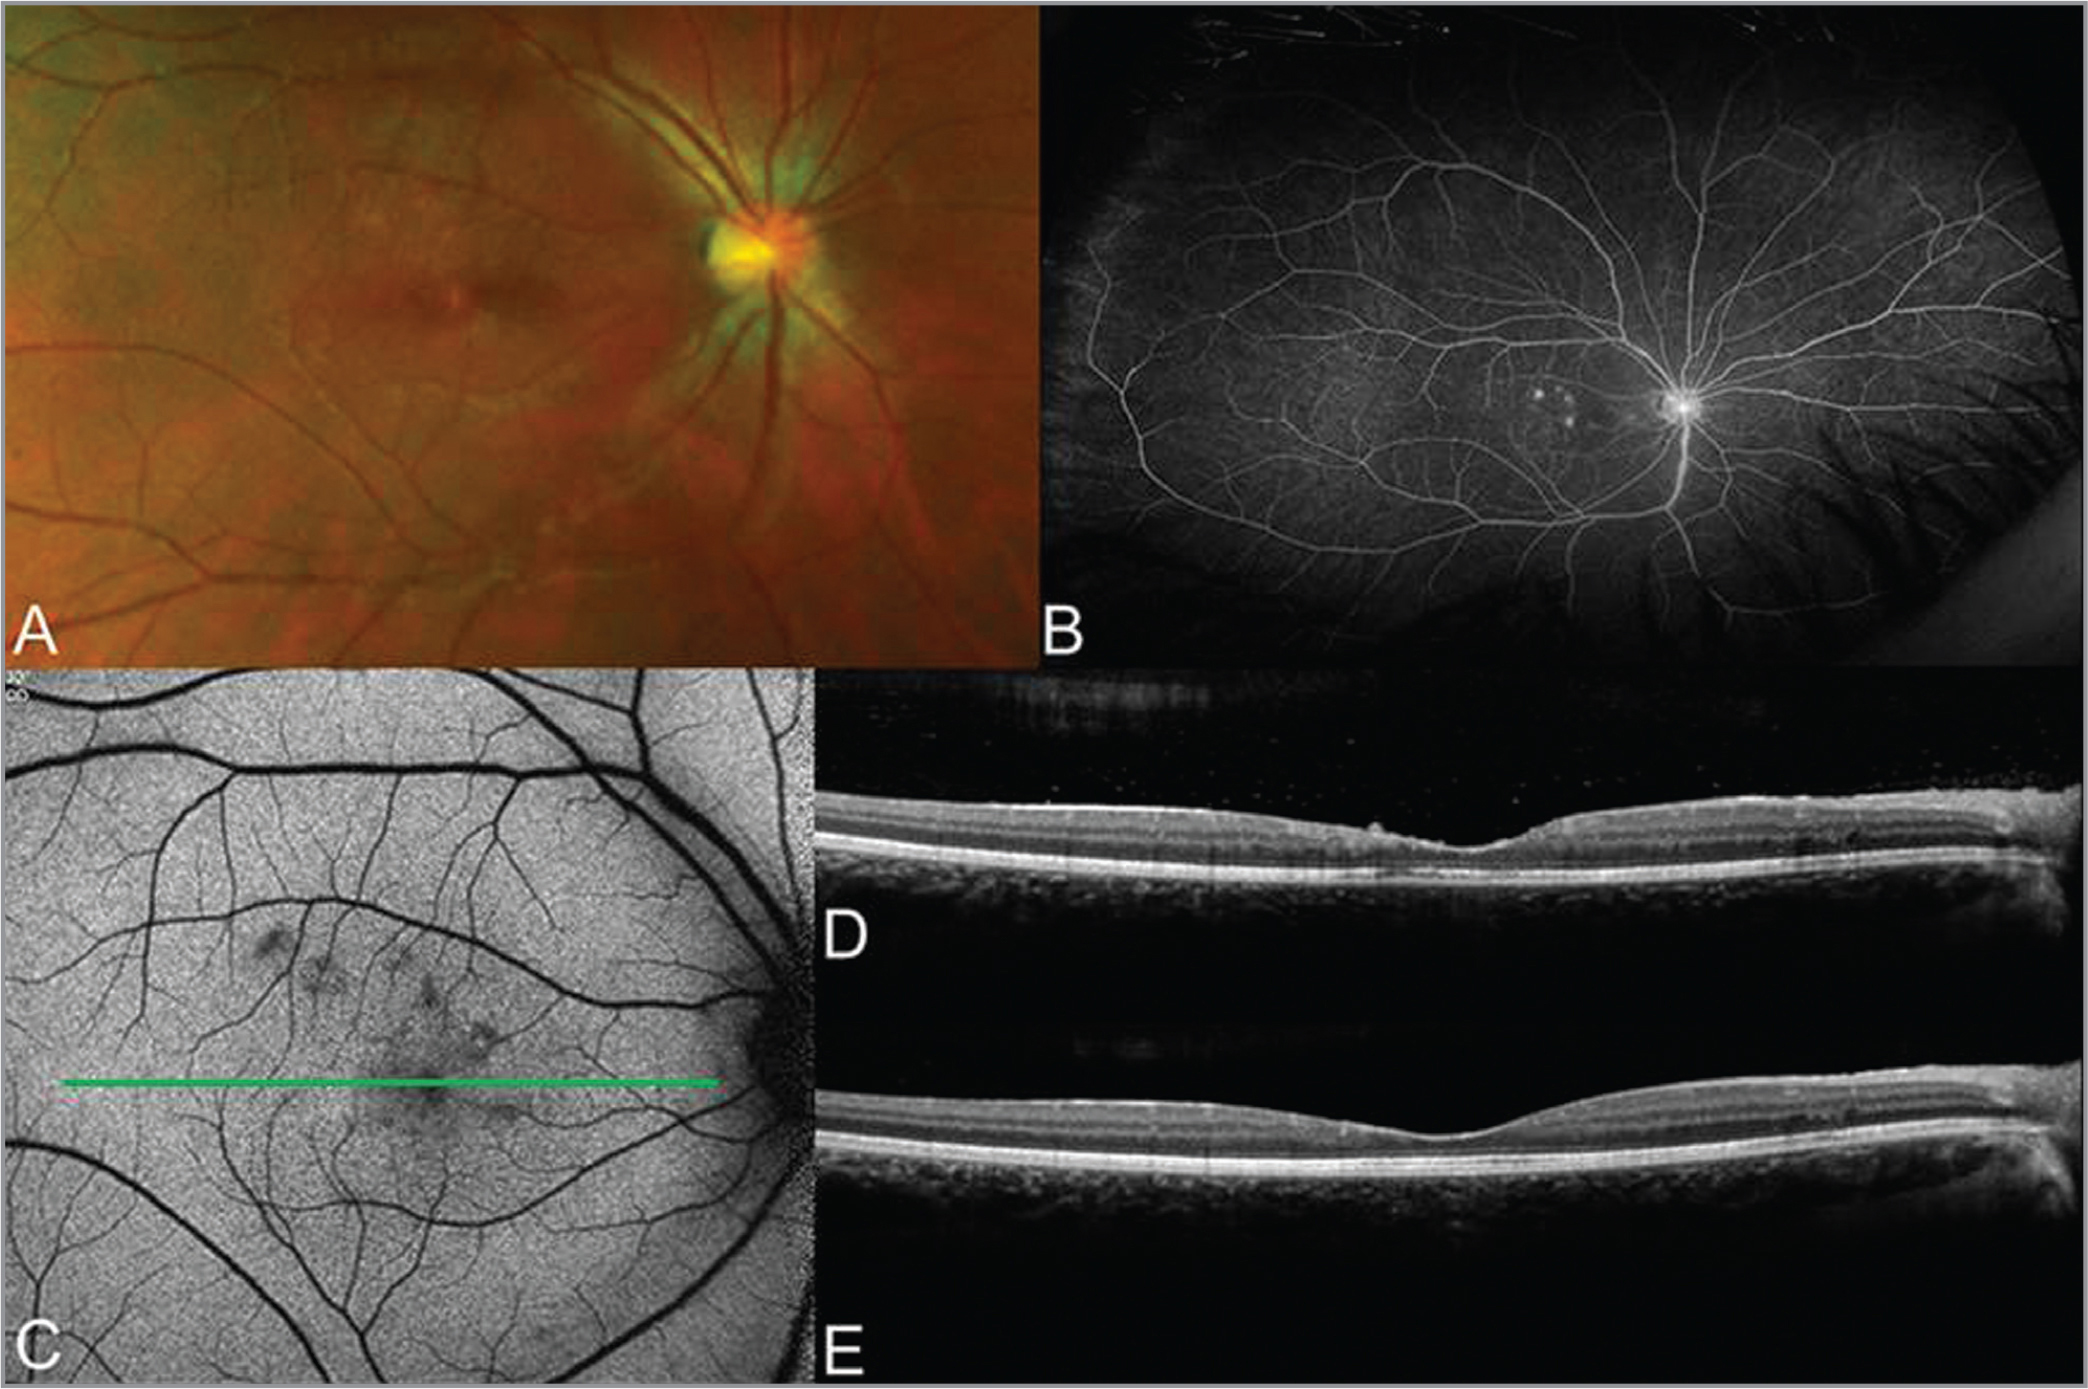 Multimodal imaging of the right eye in a 21-year-old woman with punctate outer retinal toxoplasmosis. (A) Color fundus photograph shows white, punctate, perifoveal retinal lesions. (B) Ultra-widefield fluorescein angiogram shows hyperfluorescence of the retinal lesions and optic nerve staining. (C) Fundus autofluorescence demonstrates punctate areas of hypoautofluorescence. The green line has been added to show the position of the B-scans in (D) and (E). (D) Optical coherence tomography shows findings of focal disruption of the ellipsoid and interdigitation zones. Within the hyporeflective pre-macular bursa, there are hyperreflective superficial retinal deposits that have largely resolved and become inactive (E) following treatment.